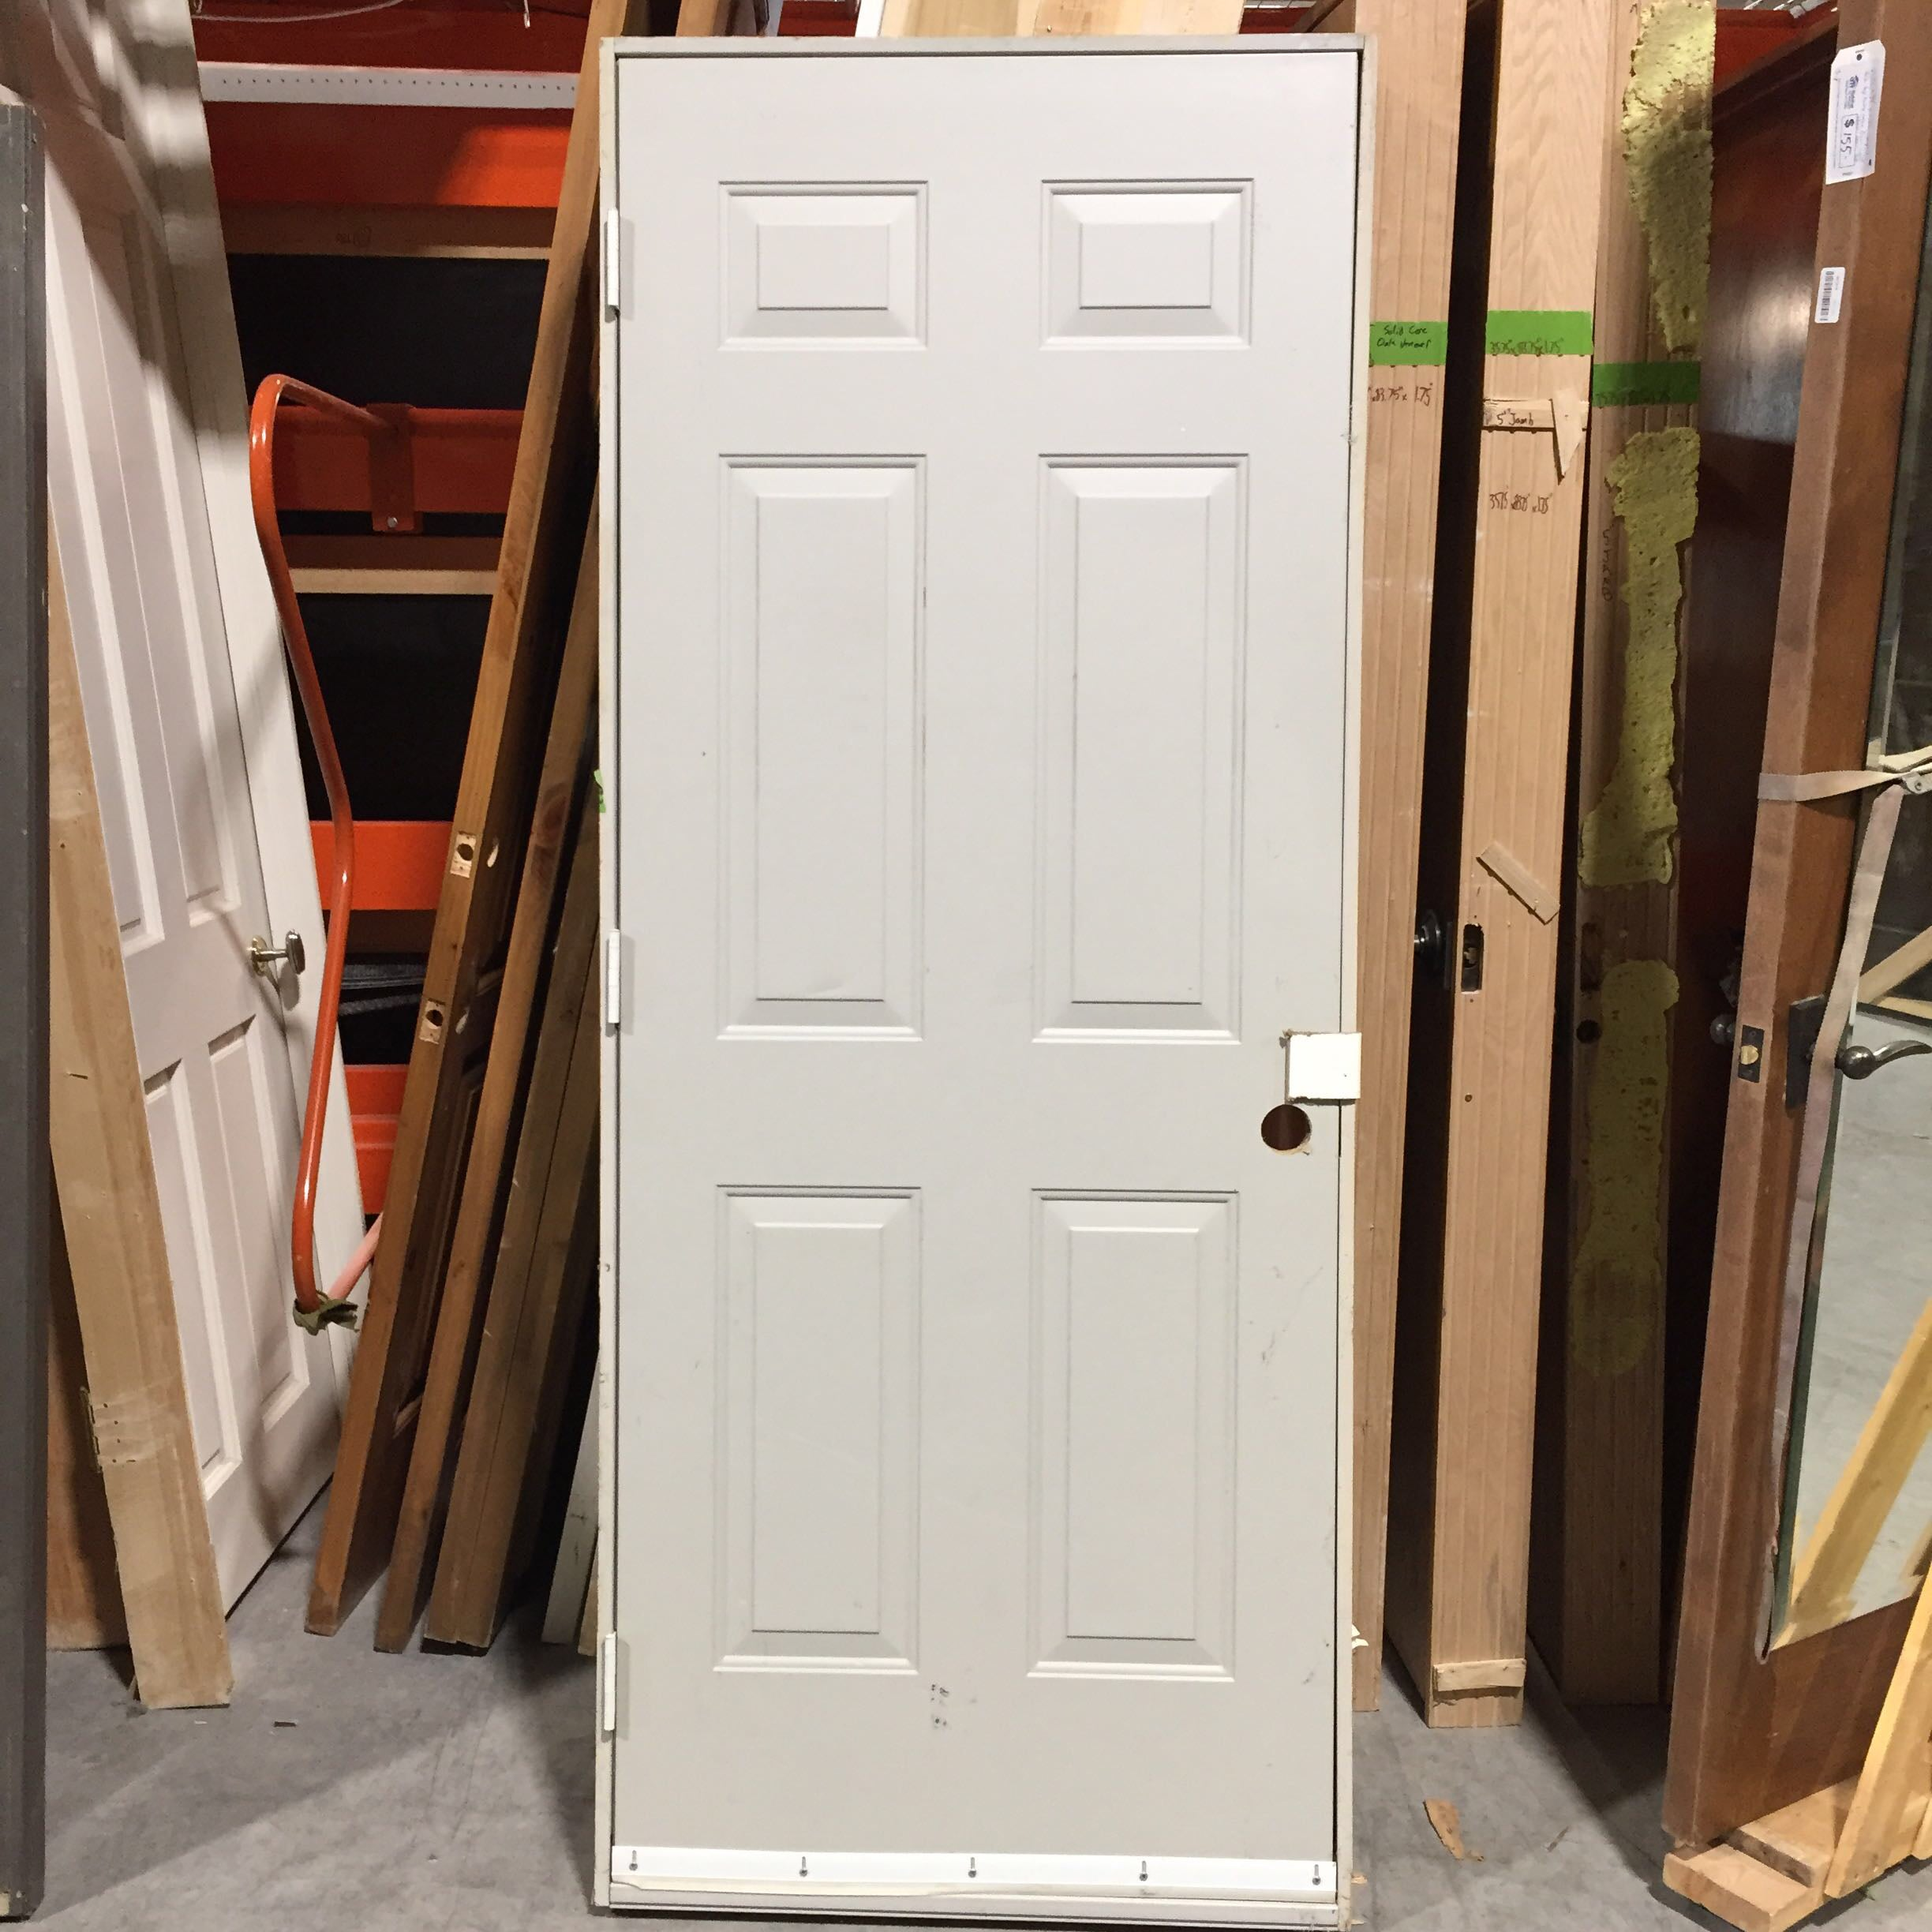 "31.75"" x 79.5"" x 1.75"" x 4.5"" Grey Metal Wood Core Exterior Door W/ Jamb RH"